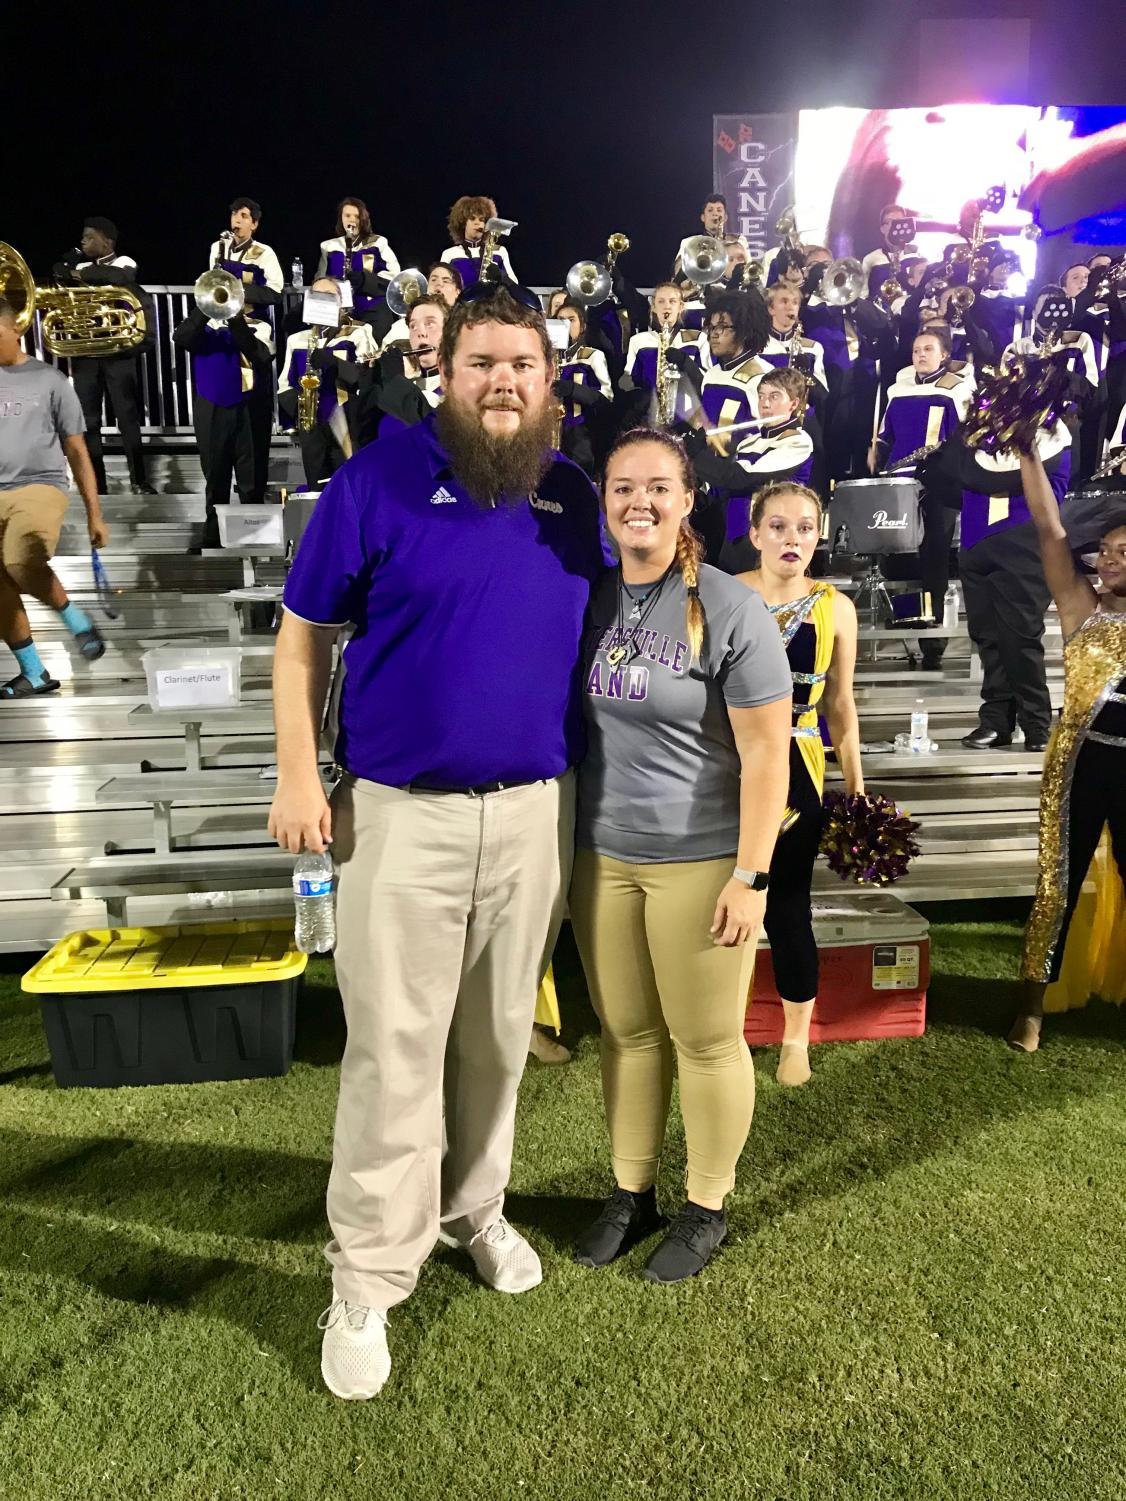 Mr. Shive, left, and Ms. Lanier, right, pose in front of the band.